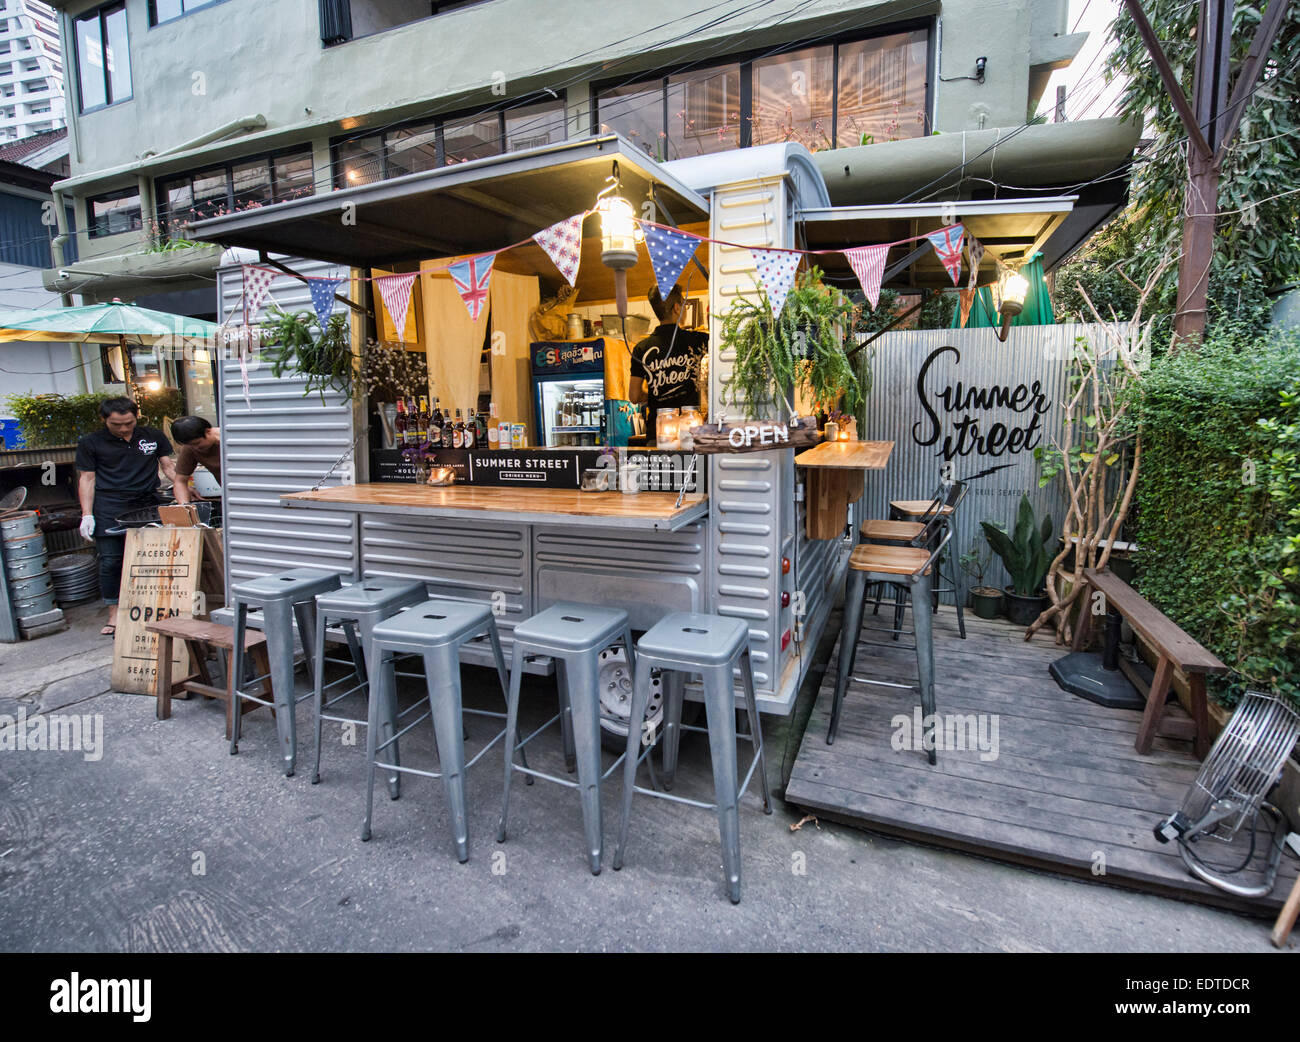 Food truck and outdoor dining bangkok thailand stock image